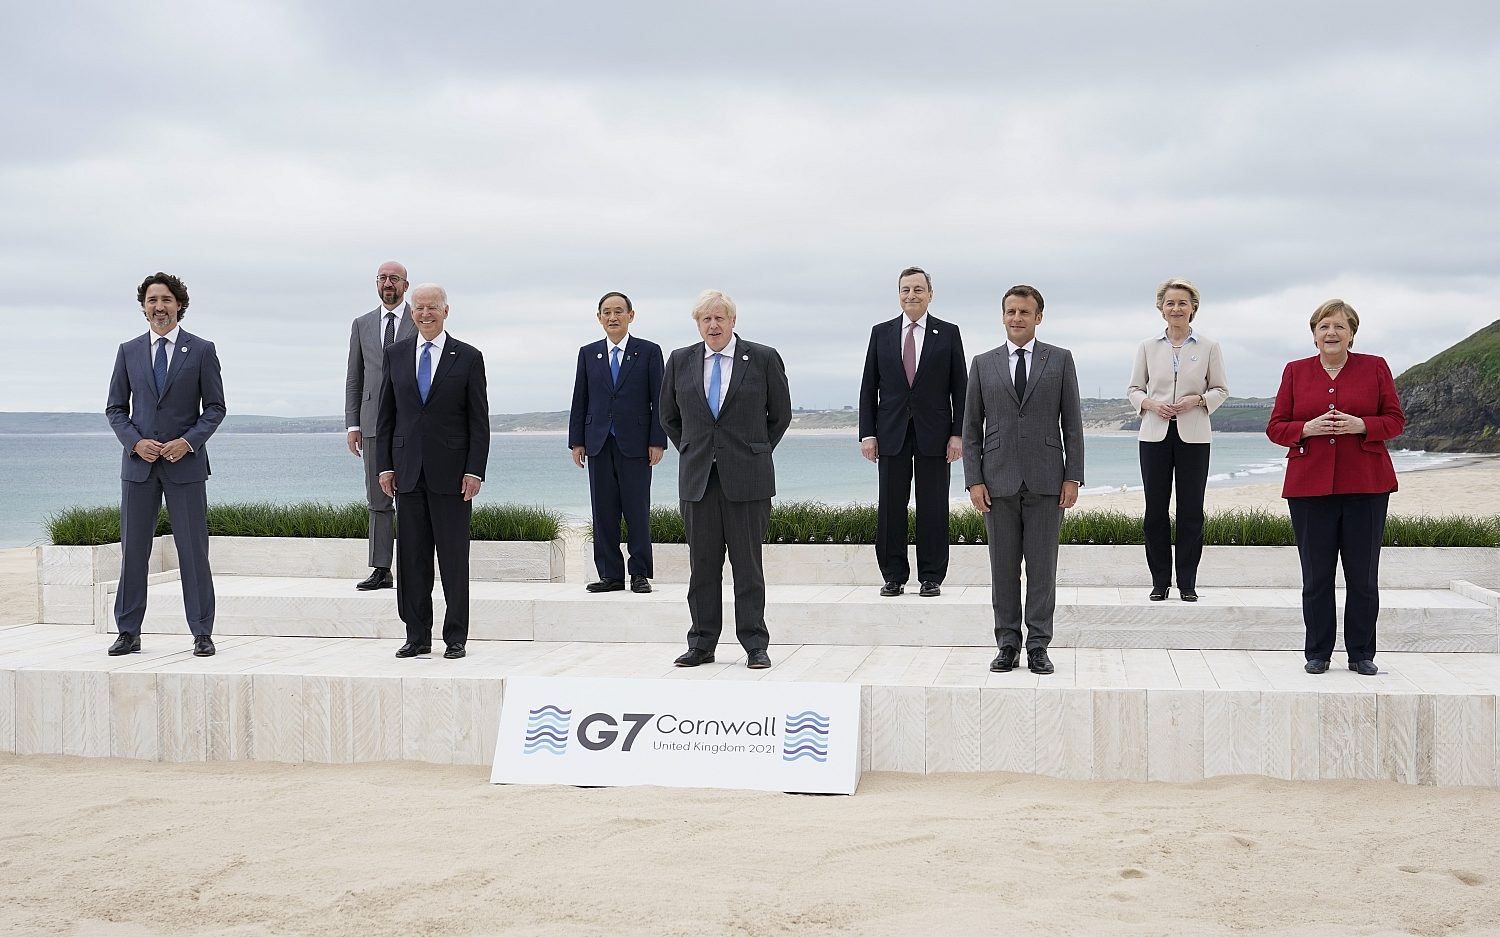 G-7 leaders agree on vaccines, countering China